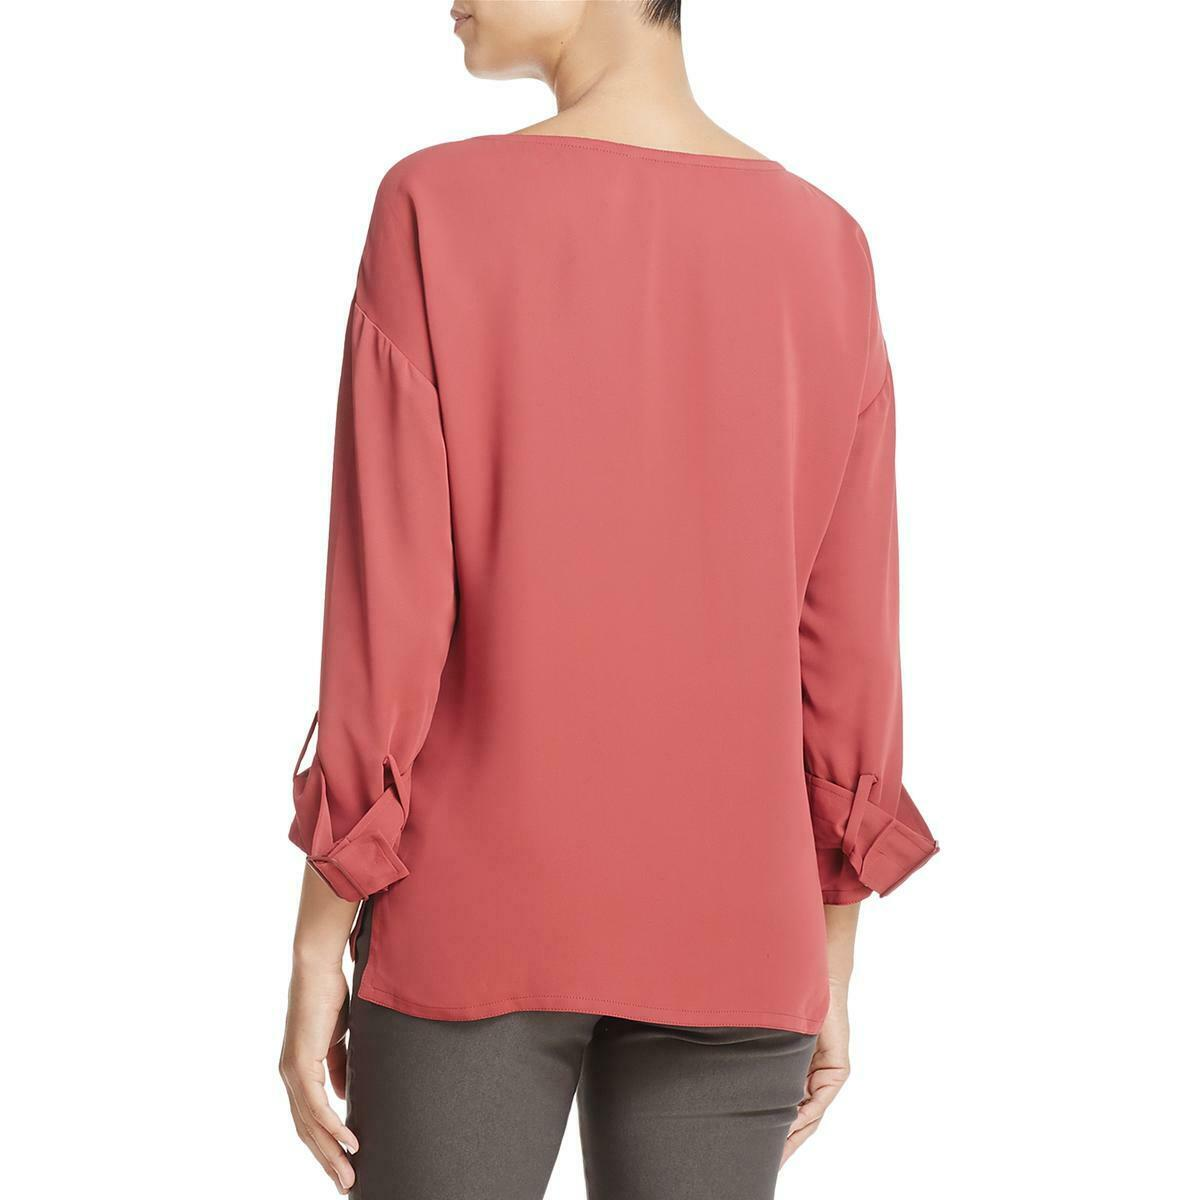 Zoe Womens Red Boatneck Everyday Tunic Blouse Top S BHFO 0115 Nic